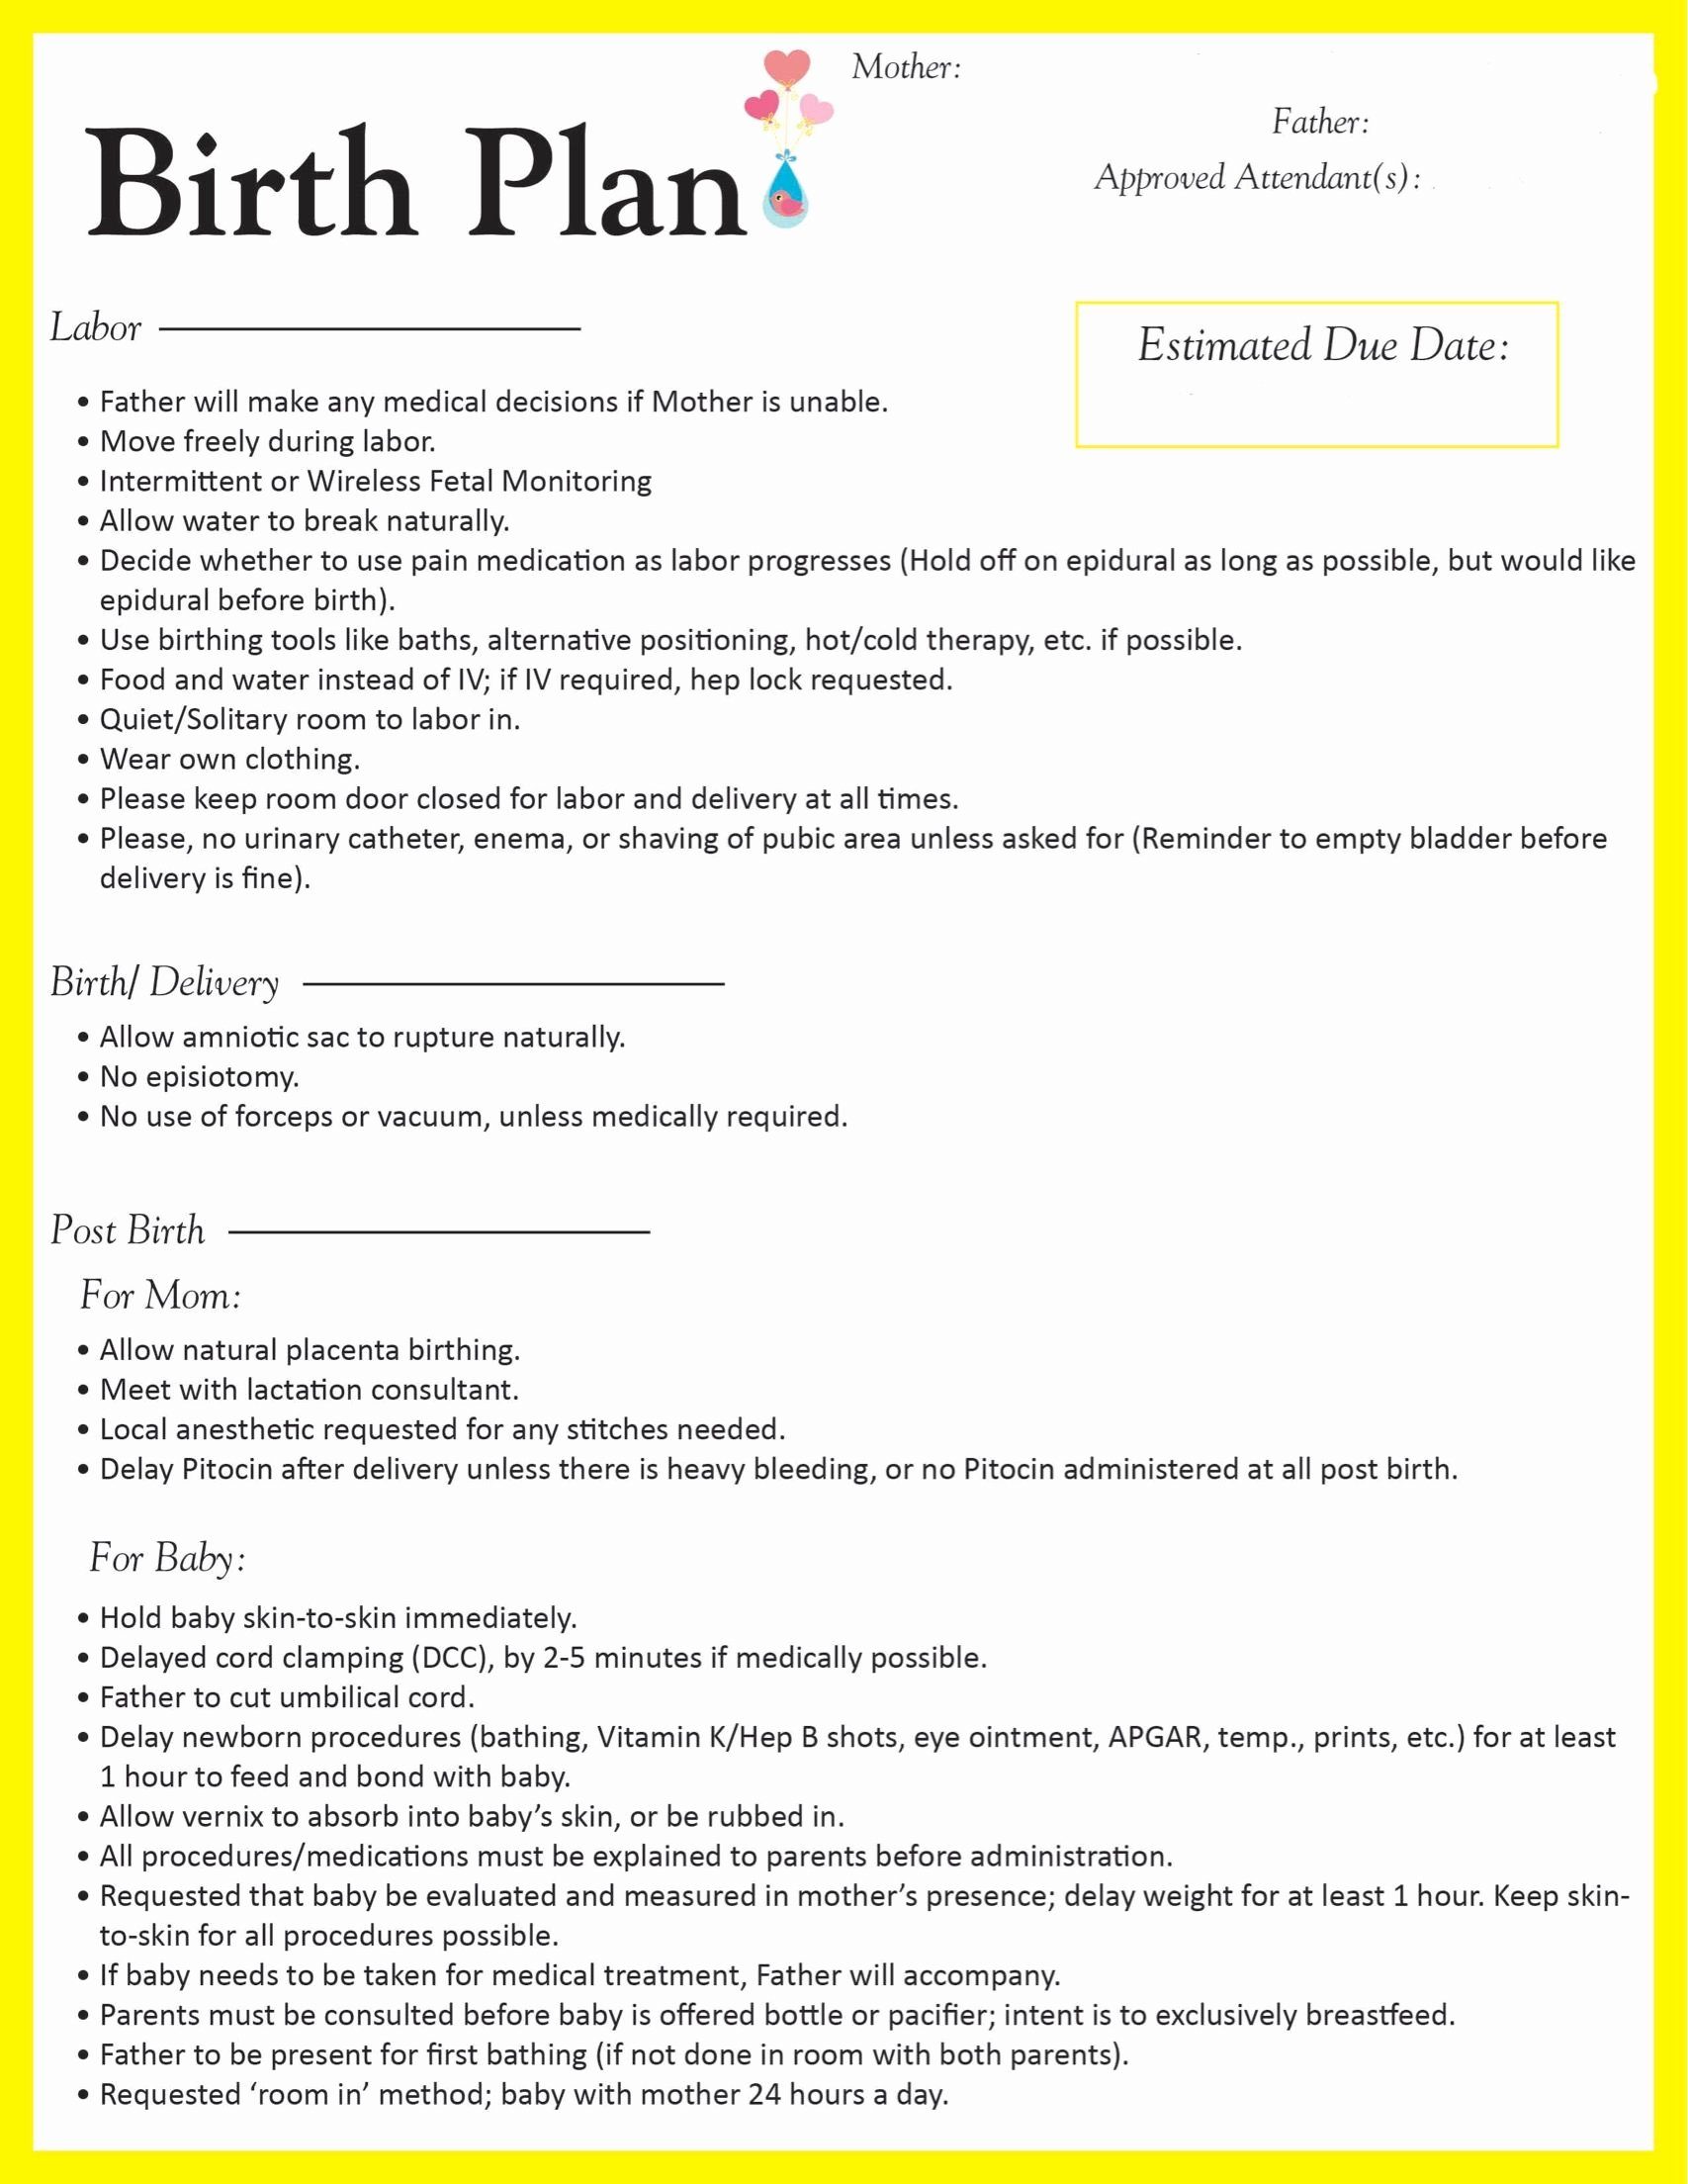 C Section Birth Plan Template Elegant Pin On Let S Have A Baby